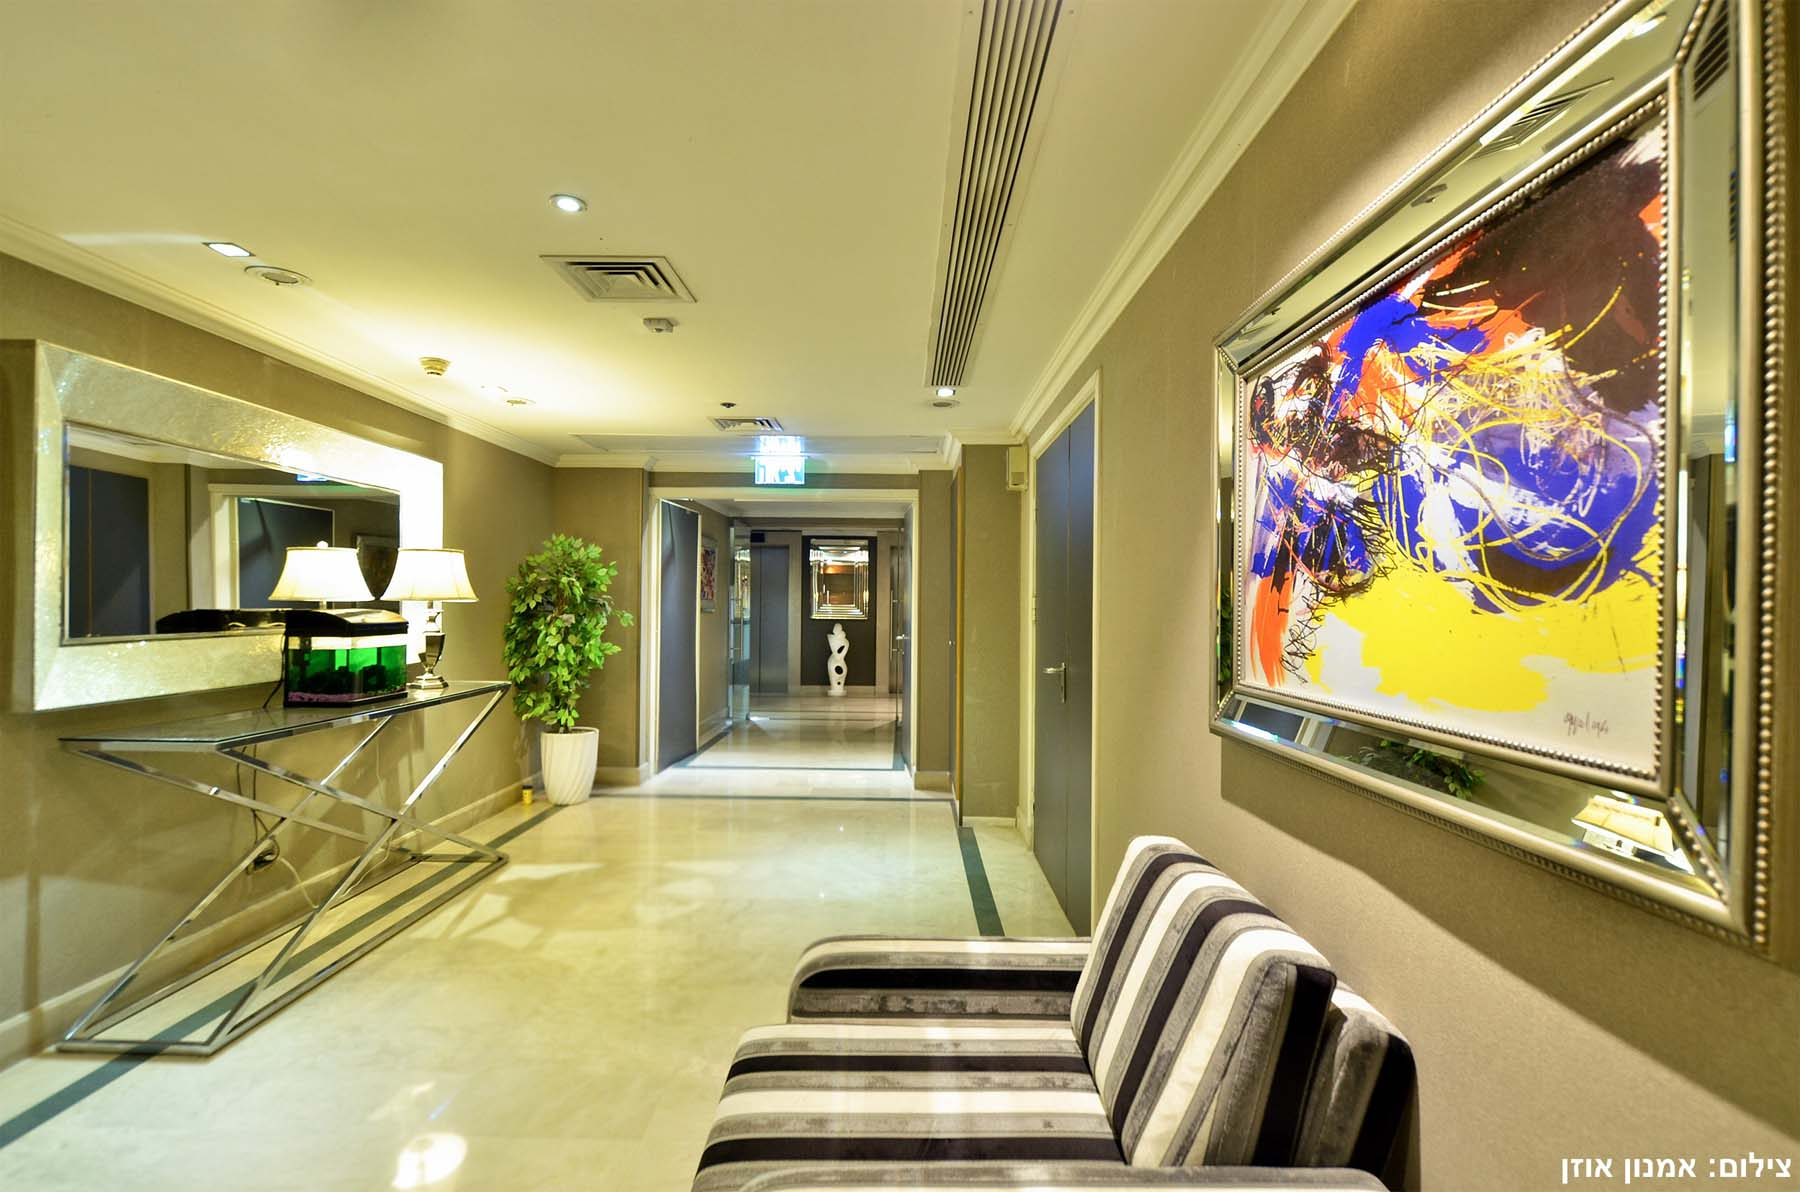 Additional photo for property listing at European Style Luxury Apartment in Leonardo City Tower 拉马特甘, 以色列 以色列